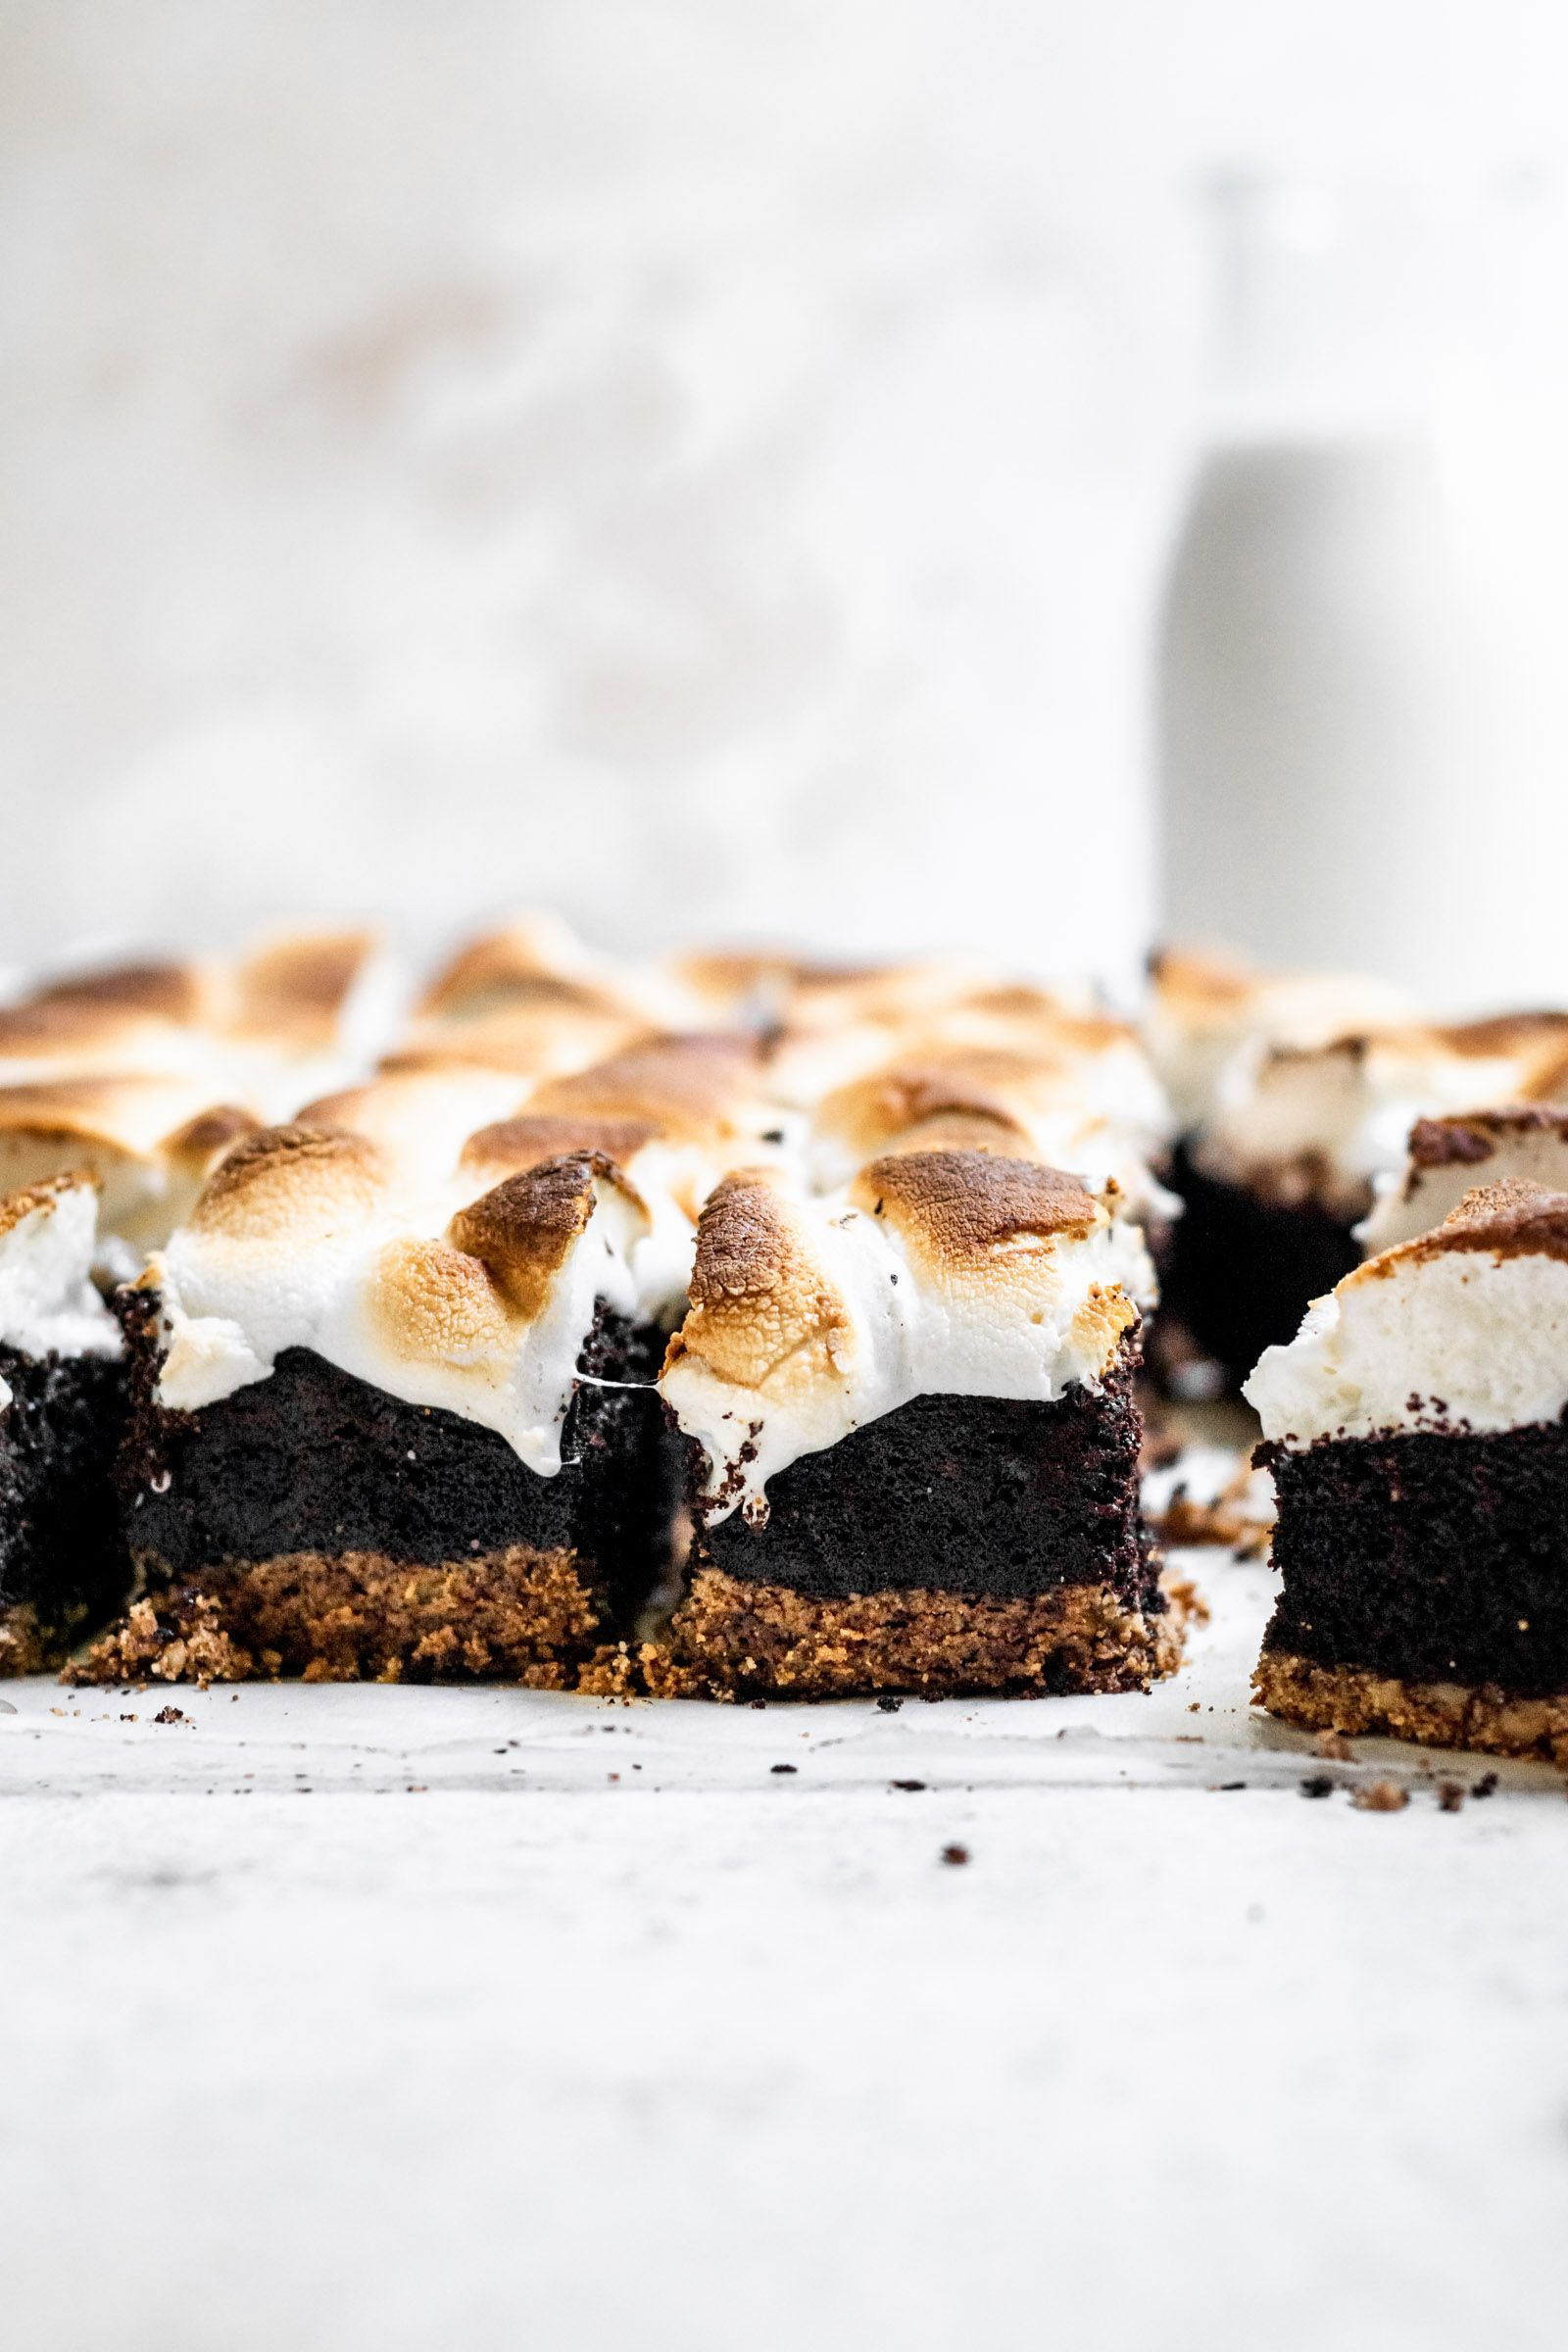 Gluten Free S'mores Brownies (Paleo Option) | Well Fed Soul Gluten Free S'mores Brownies are made w